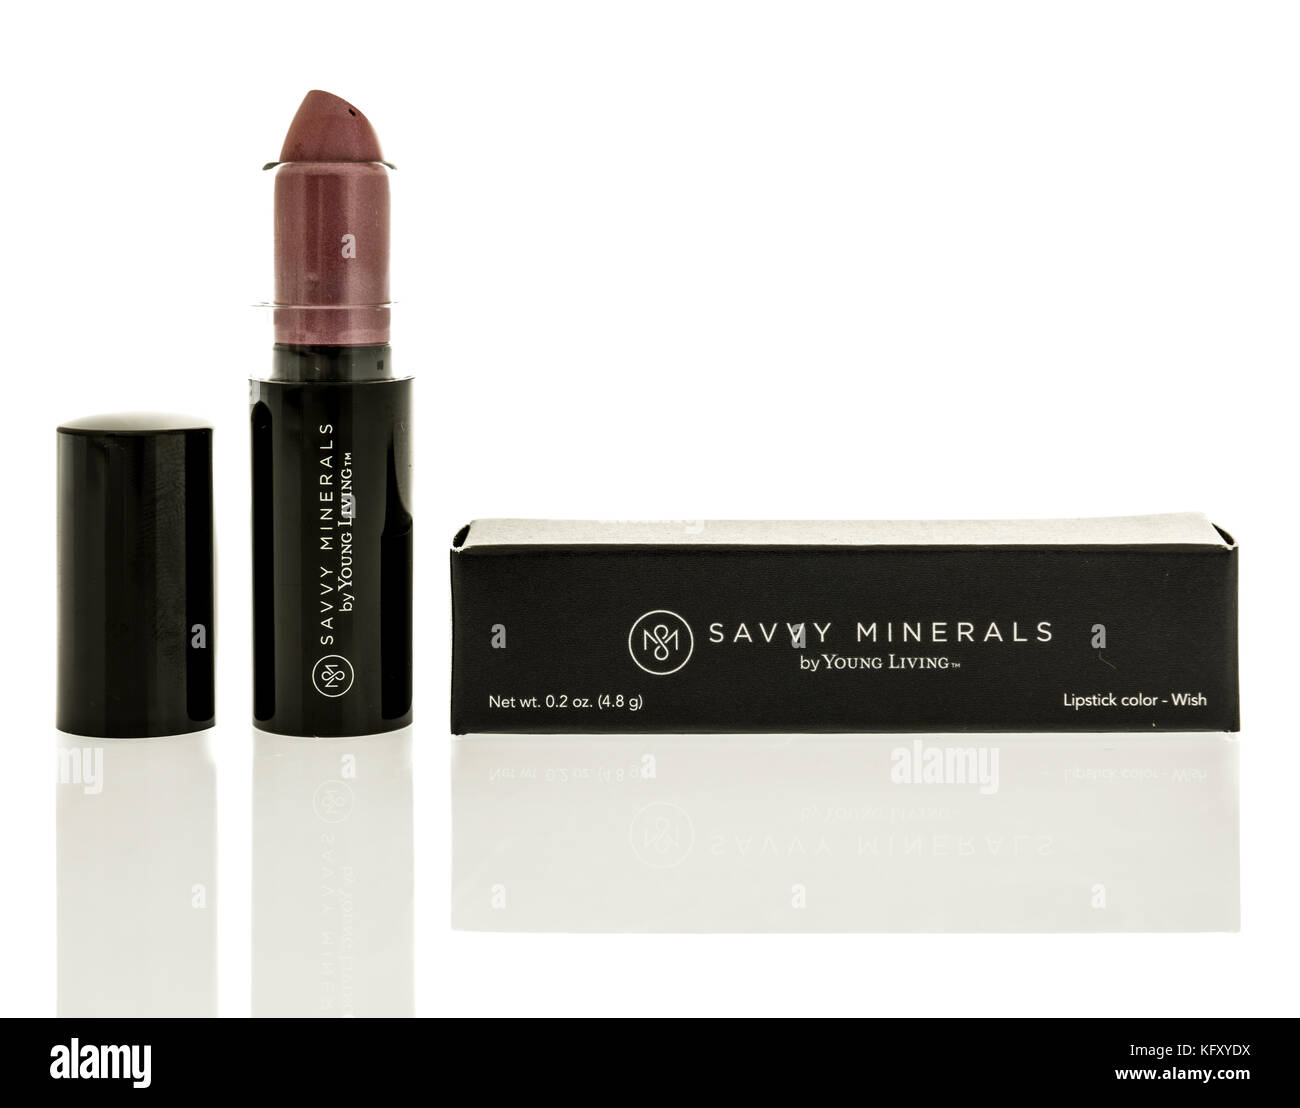 Winneconne, WI - 24 October 2017:  Lipstick by Young Living Savvy Minerals on an isolated background. - Stock Image